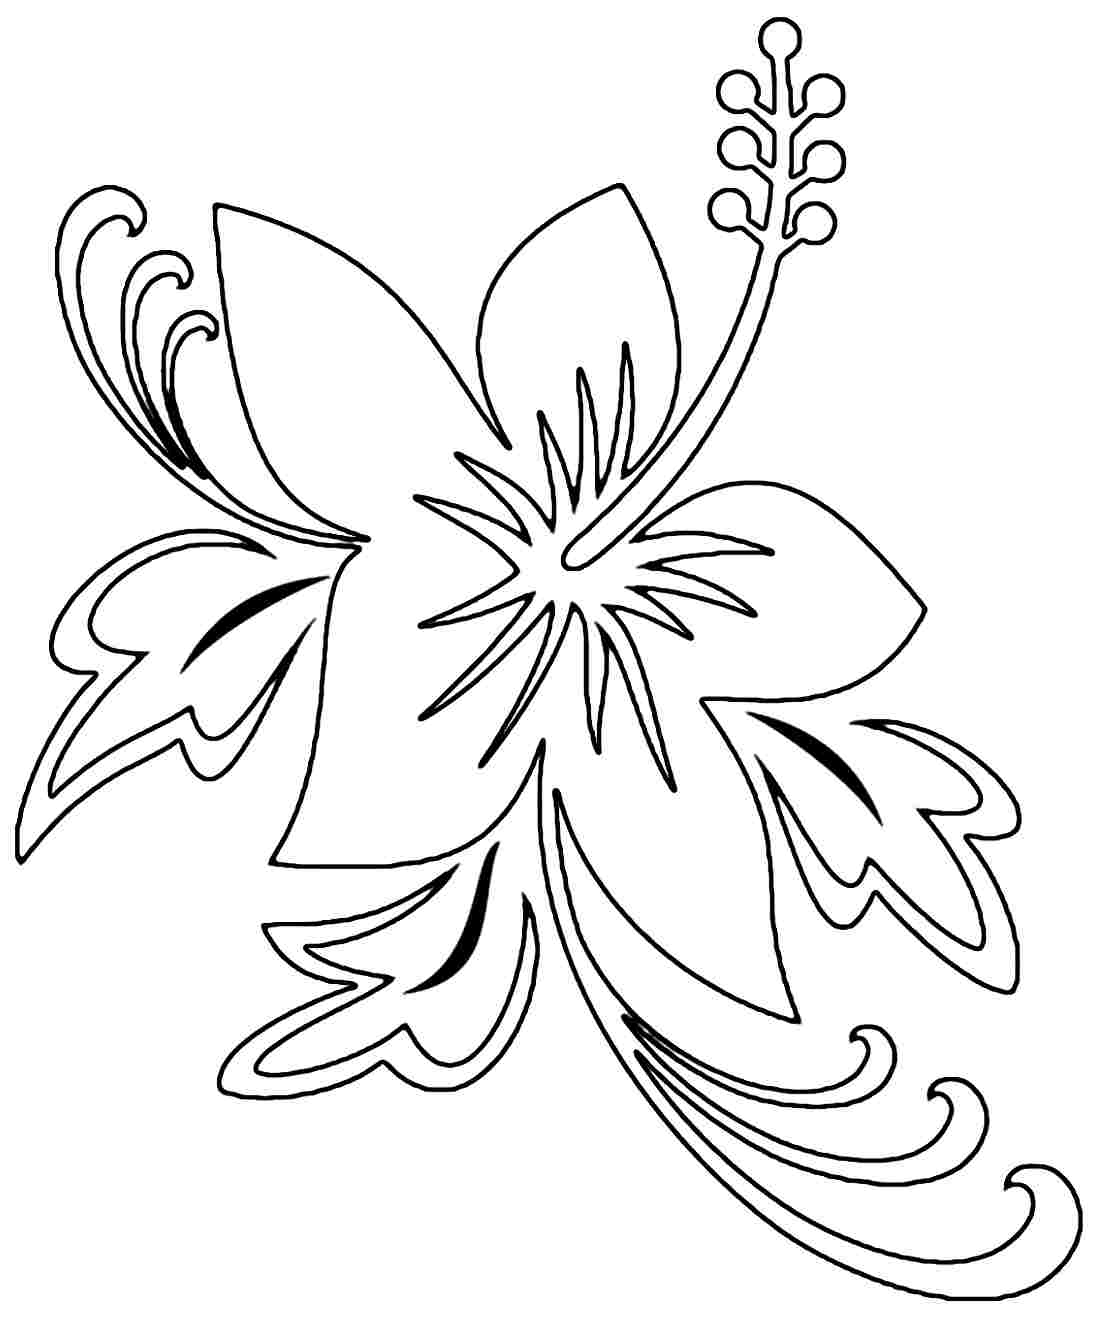 hibiscus coloring page hibiscus flower coloring page free transparent clipart hibiscus page coloring